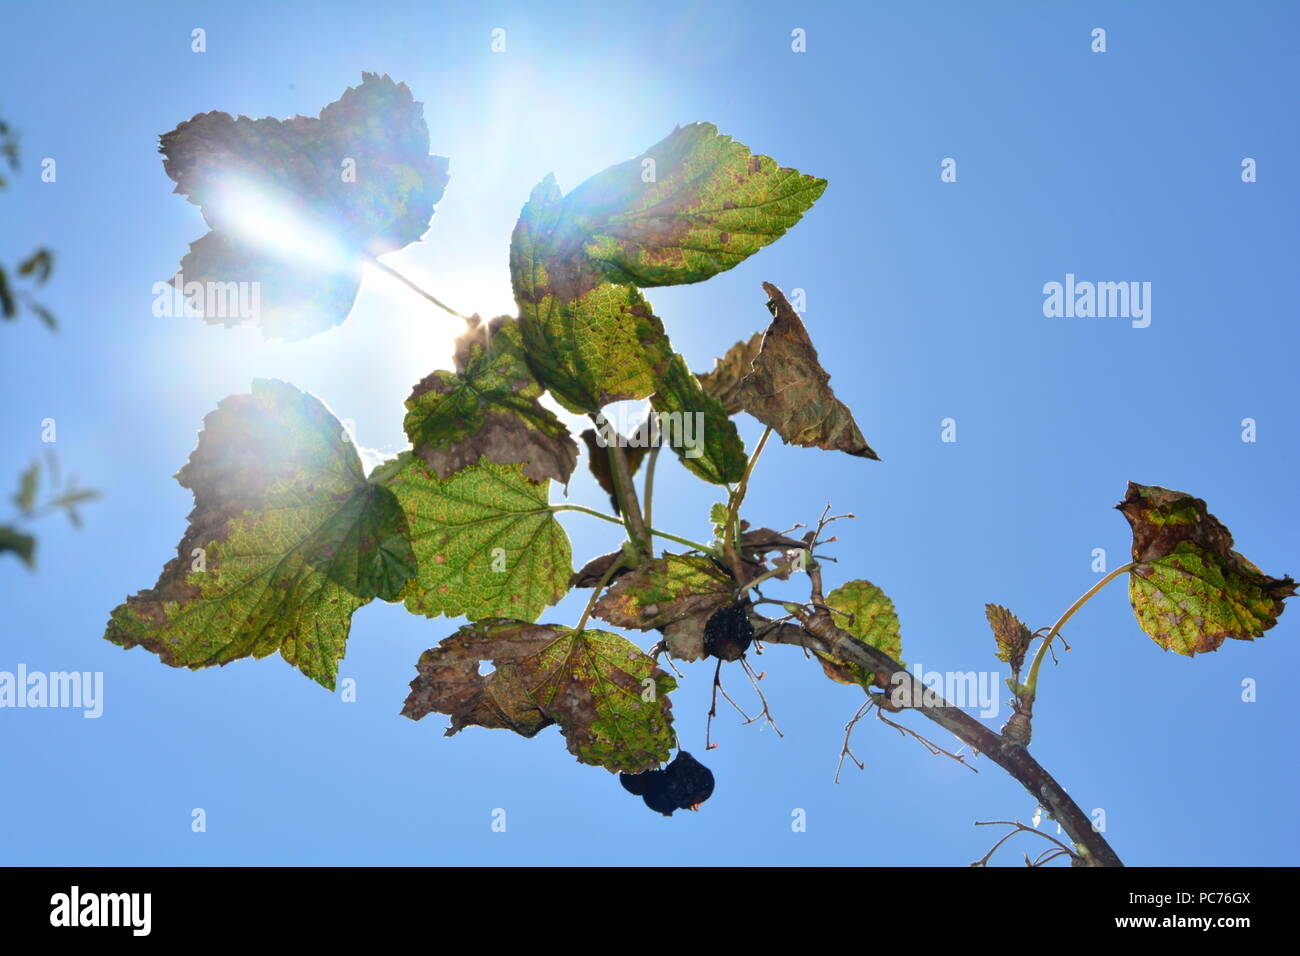 Dried black berries with brown and green leaves on the branch in front of blue sky with sun - Stock Image